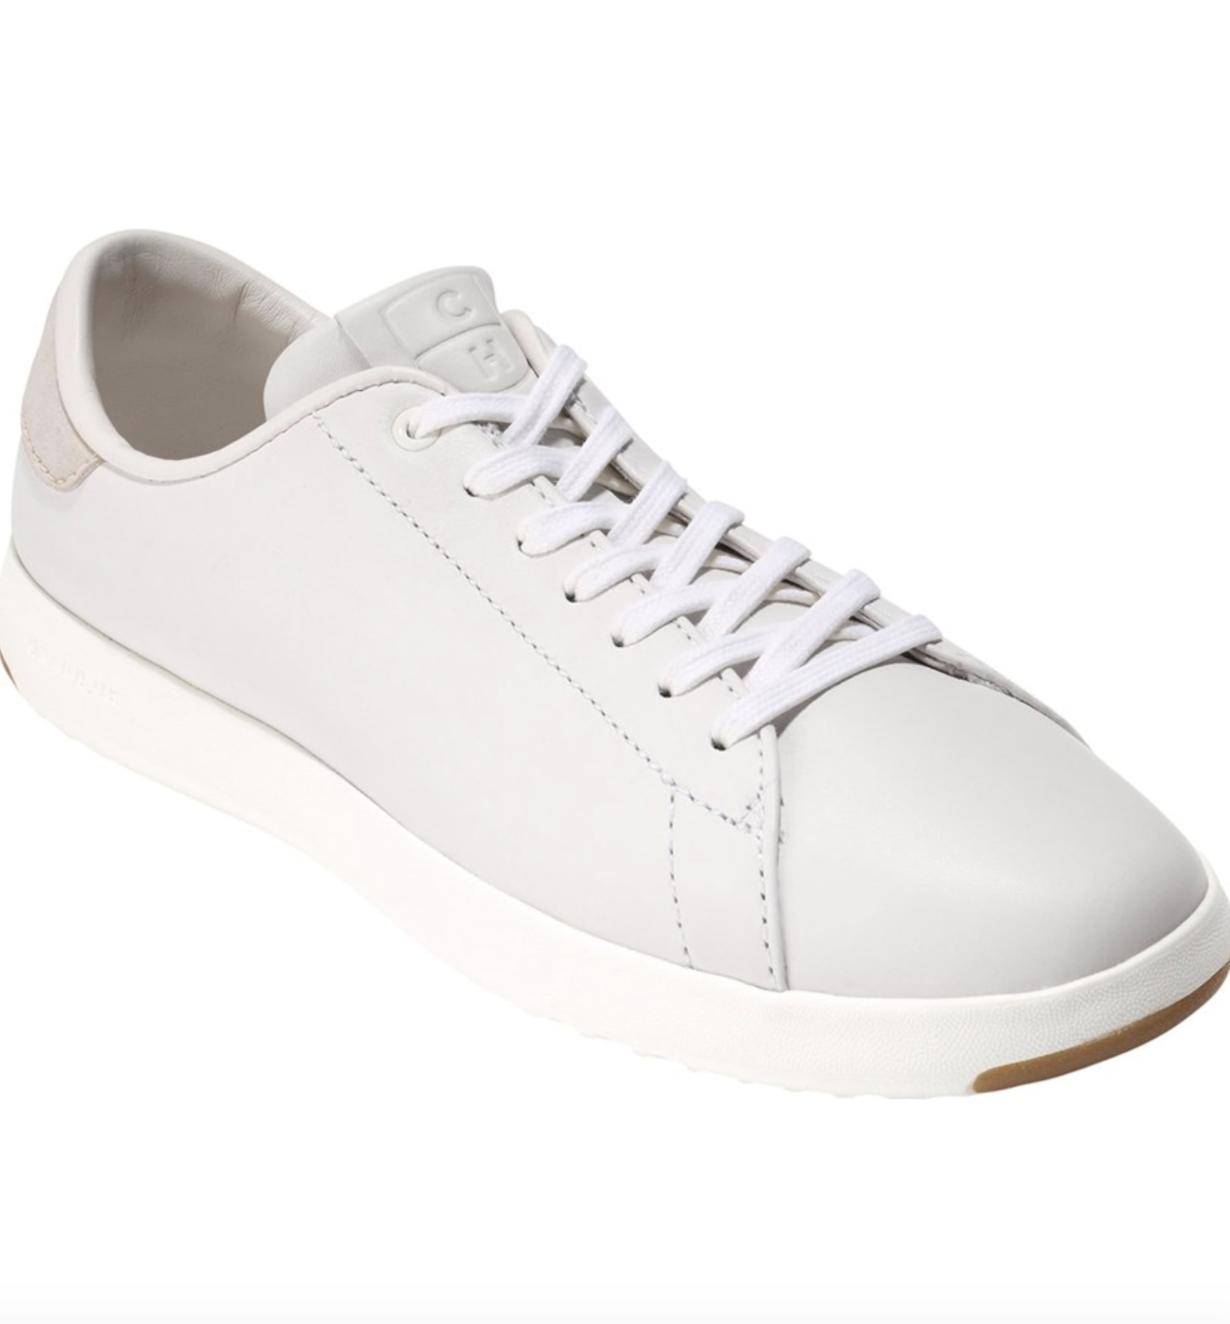 The leather tennis shoes in off-white with white sole and white laces